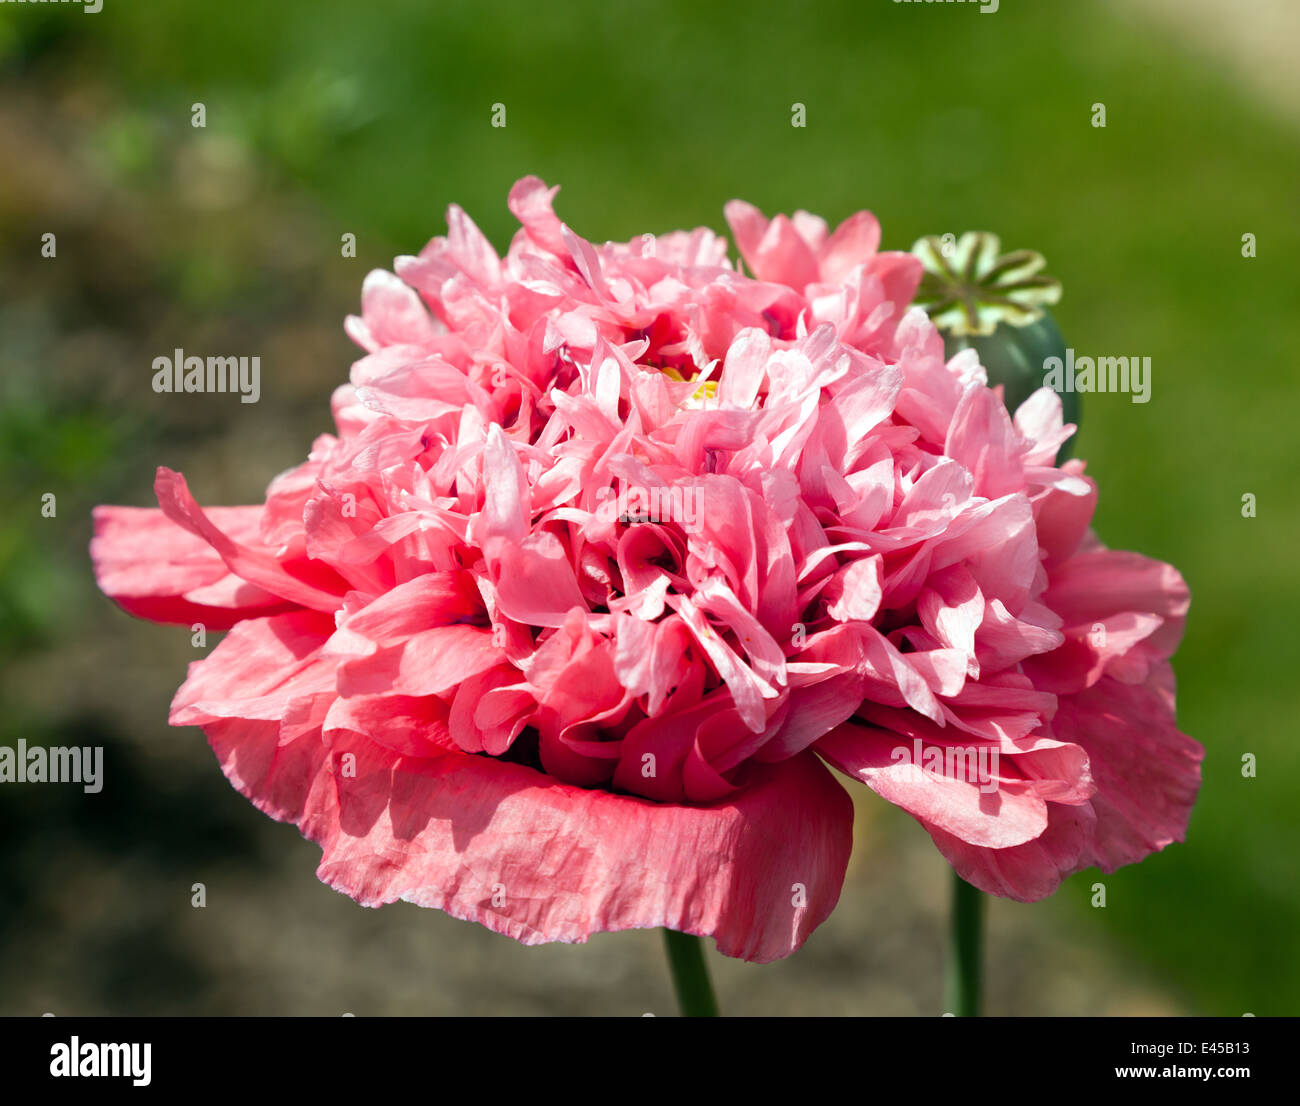 Giant Double Pink Poppy Flower Stock Photos Giant Double Pink